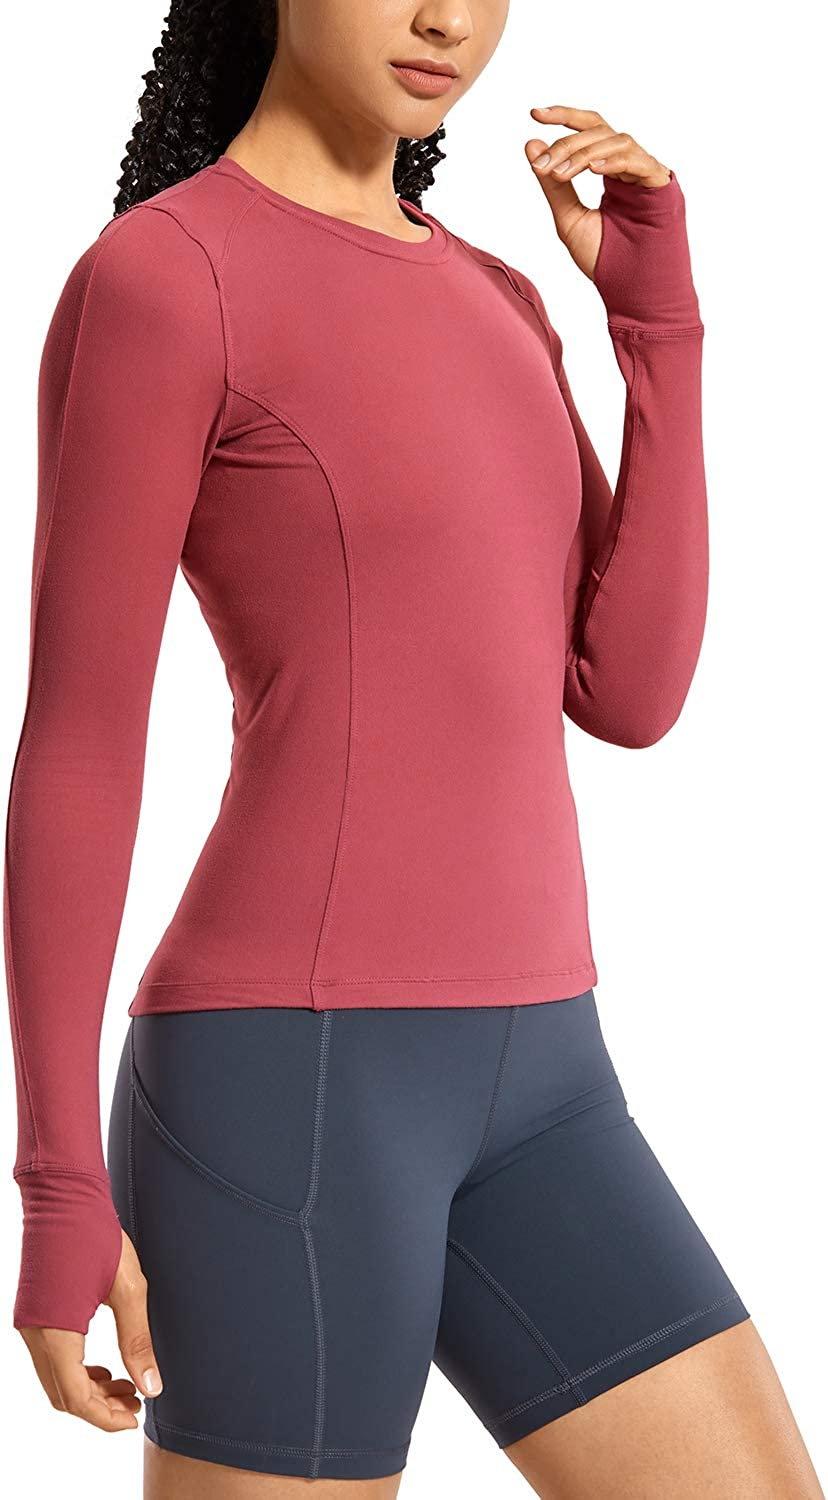 CRZ YOGA Women's Long Sleeve with Max 83% Safety and trust OFF Shirt Slim Thumbholes Running